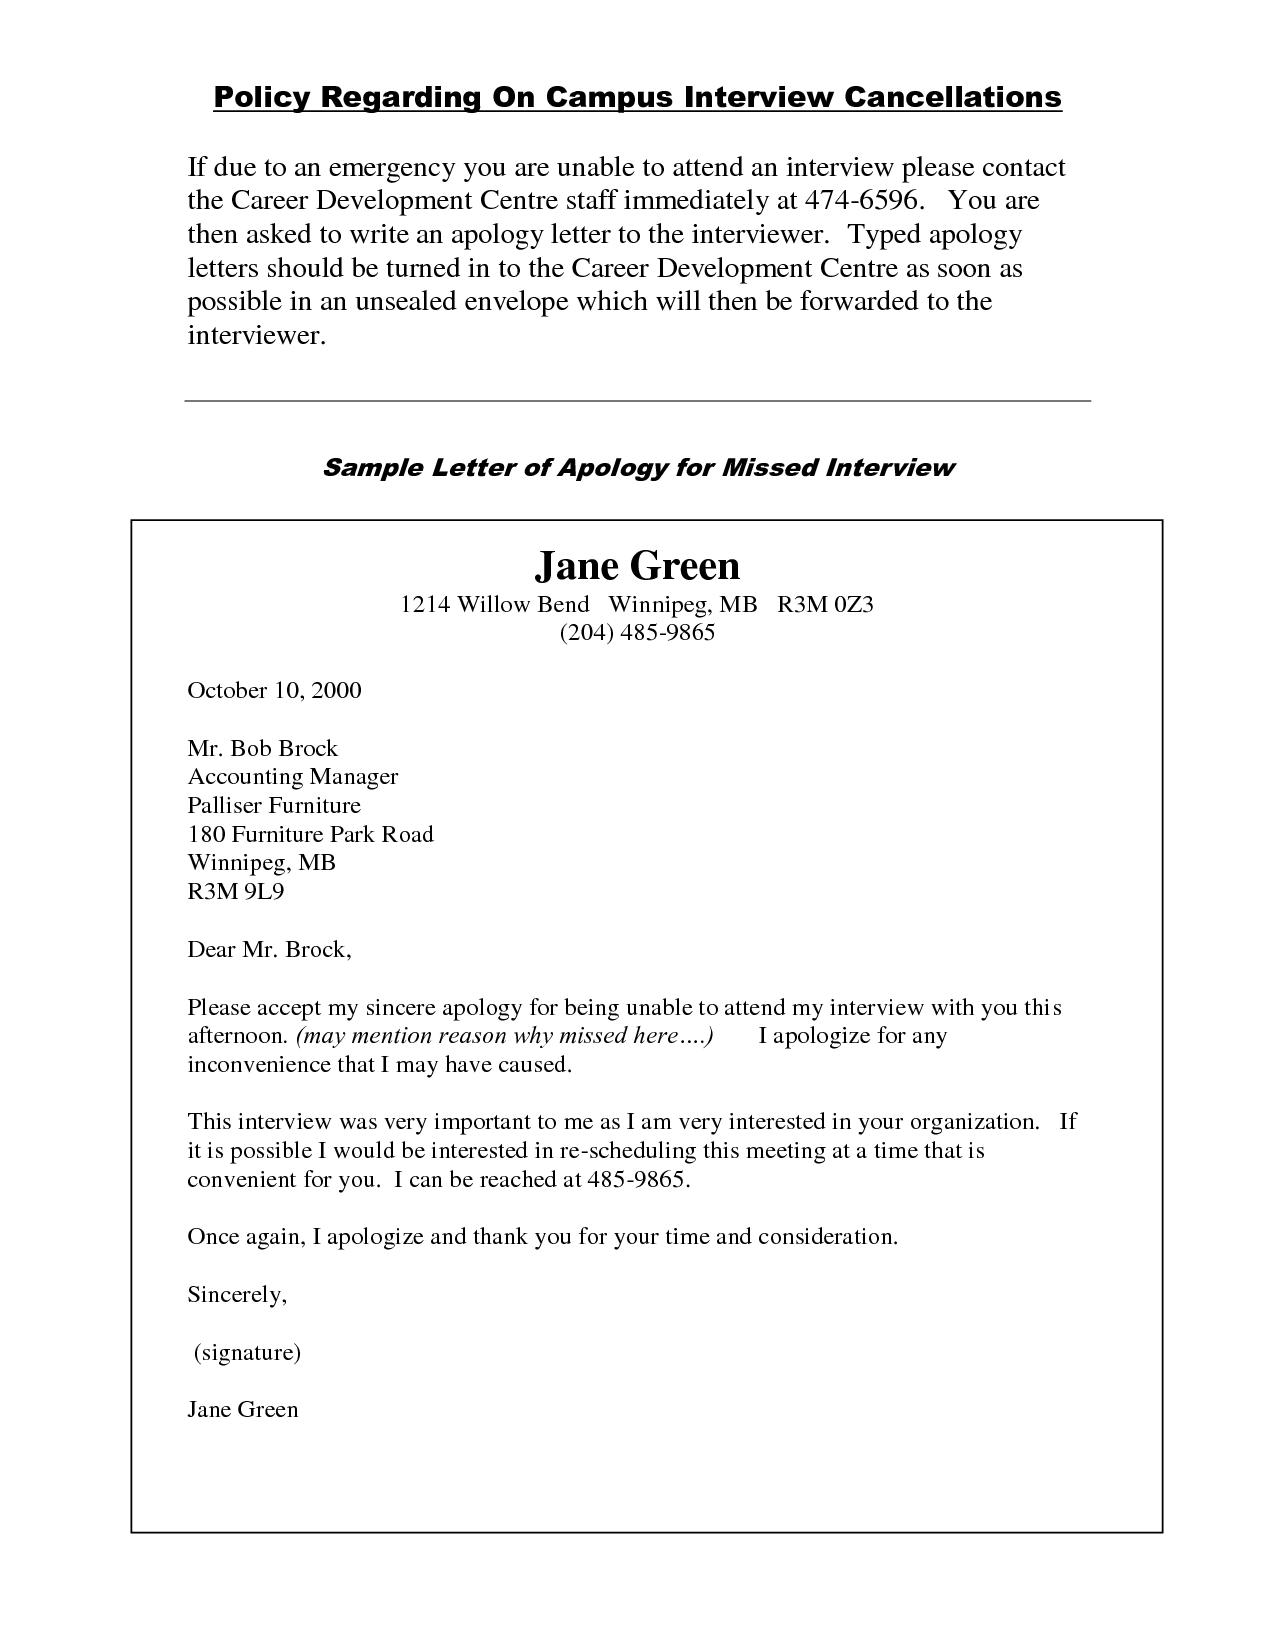 Letter Of Apology Sample Downloadtemplatesusletter Of Apology